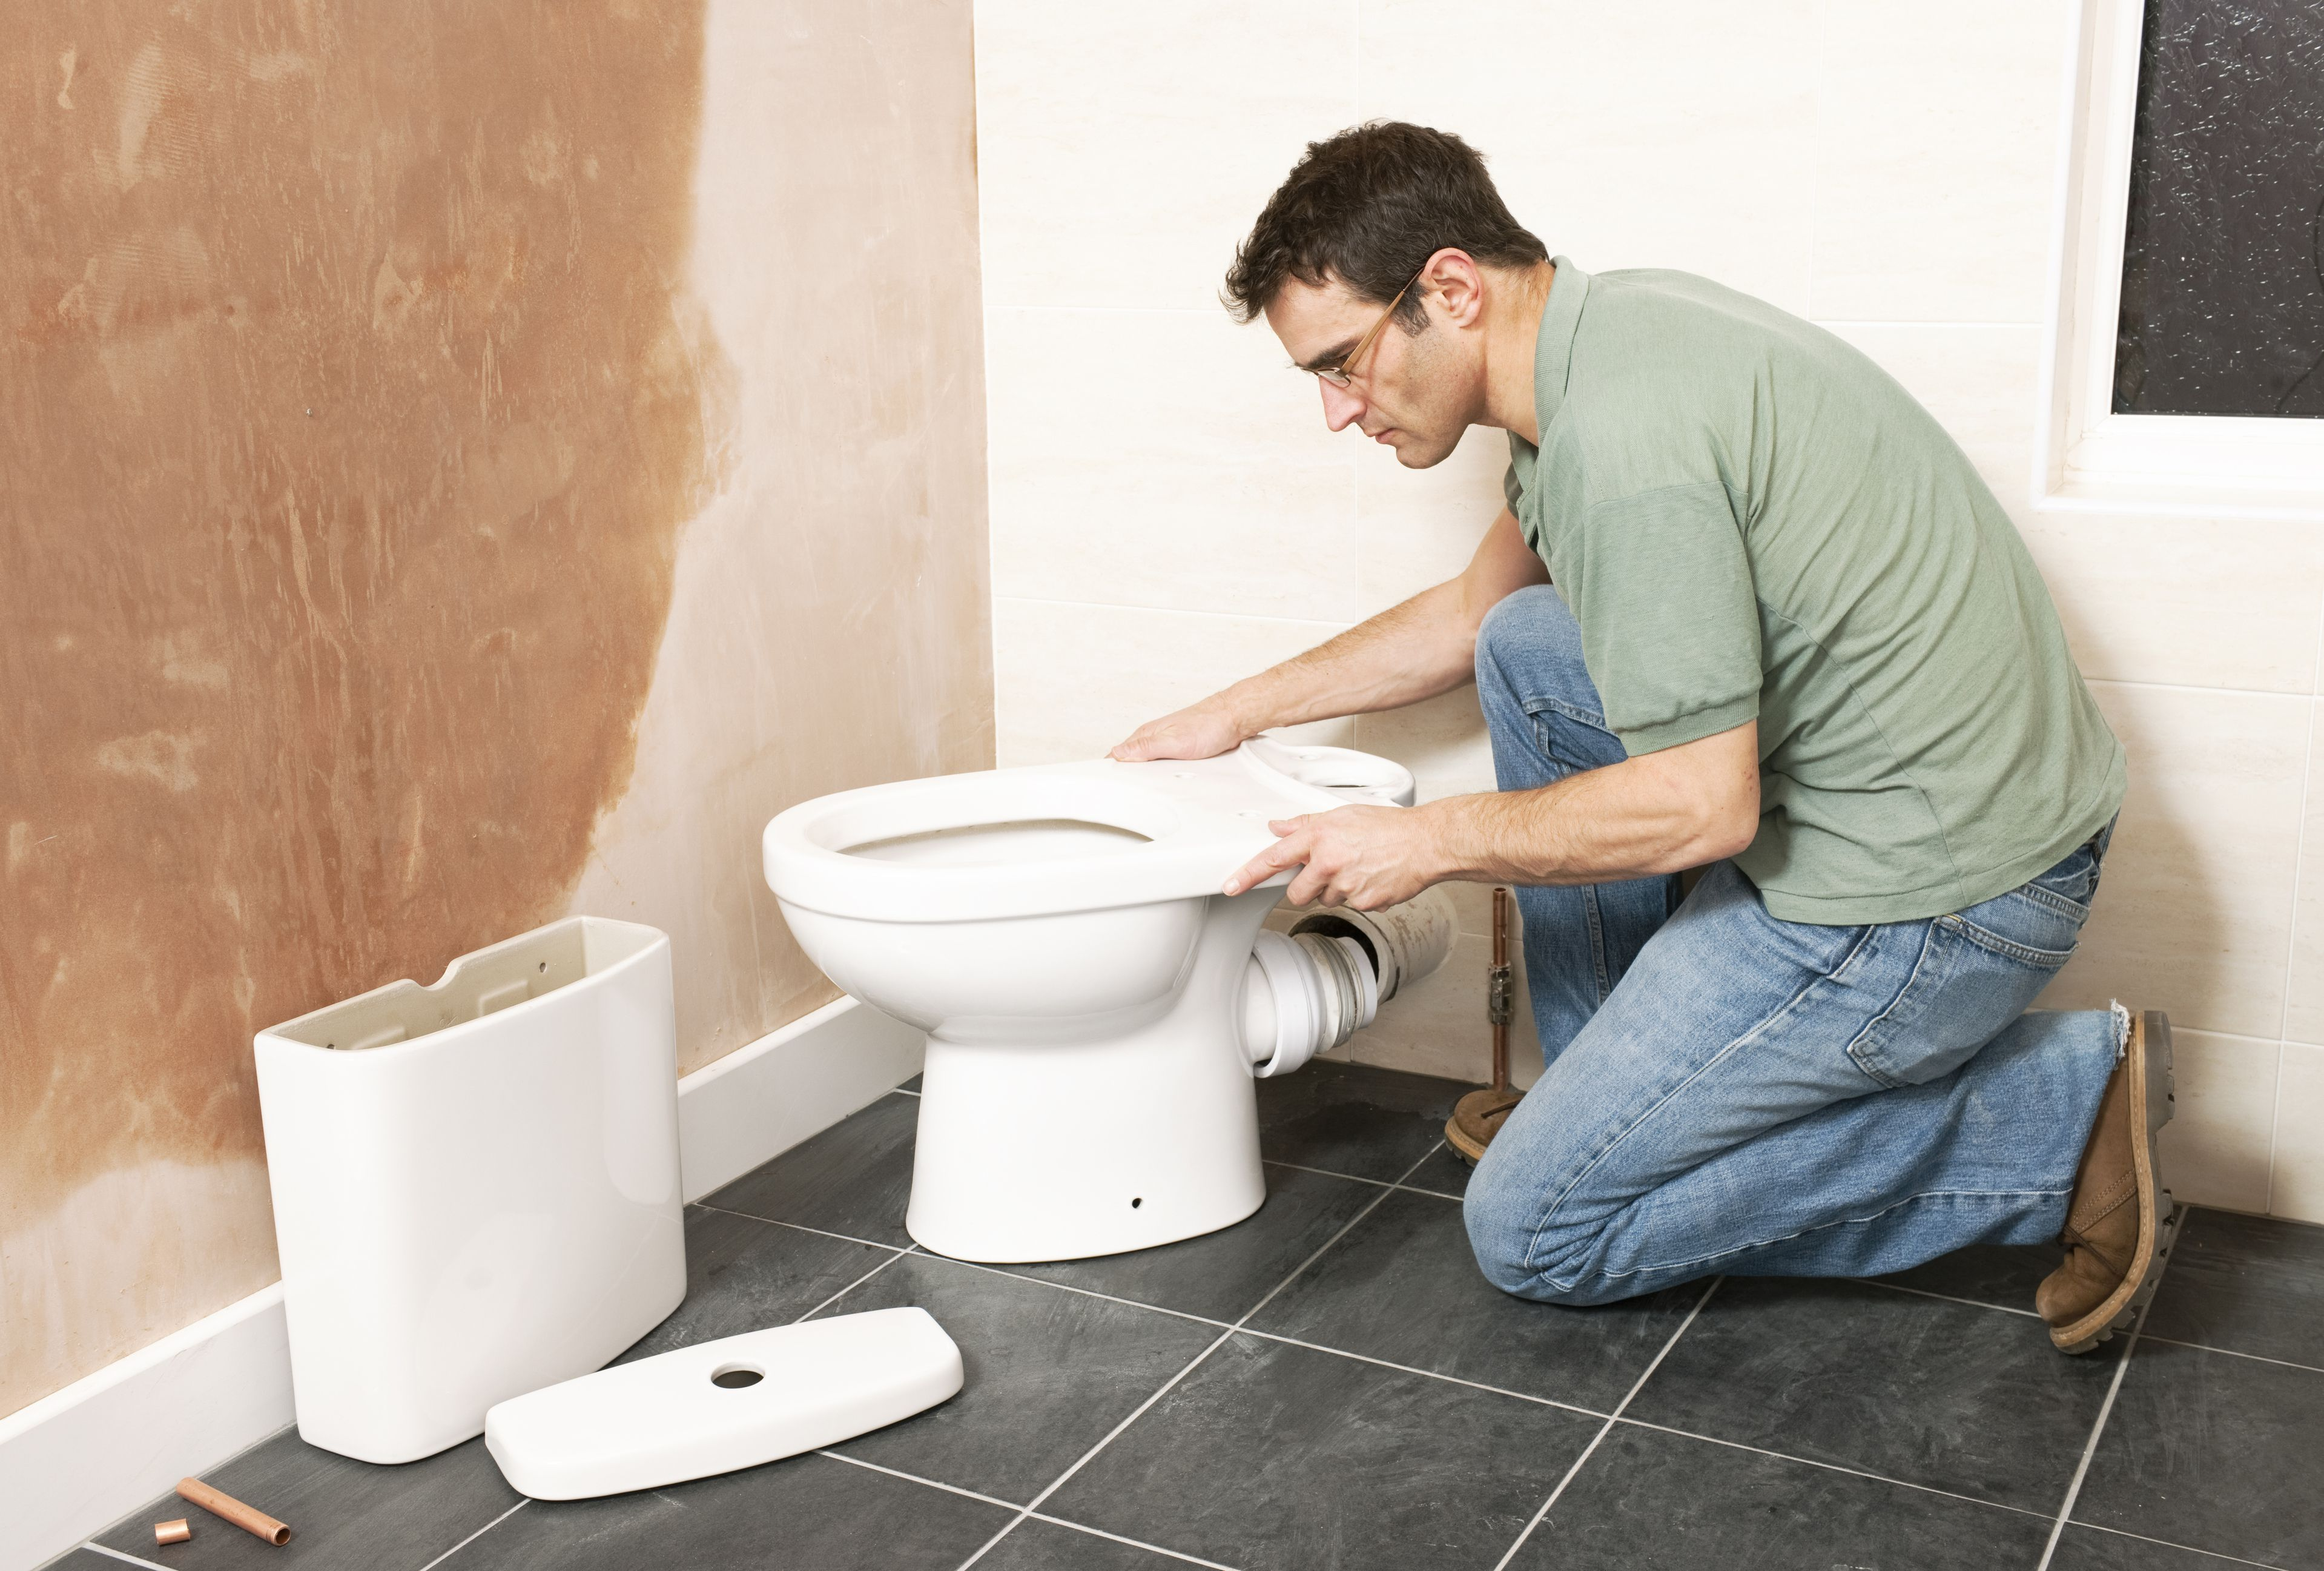 How To Move A Toilet Minimize Cost And Mess